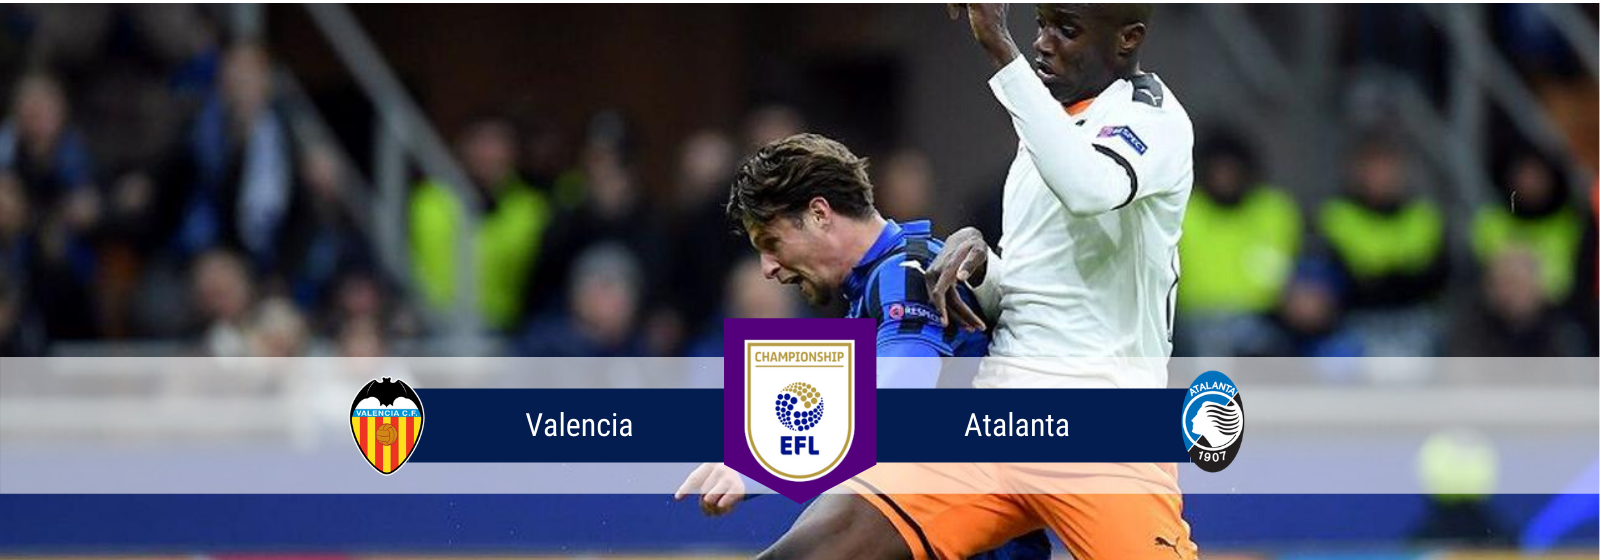 Asianconnect: Valencia vs Atalanta Odds for March 10, 2020